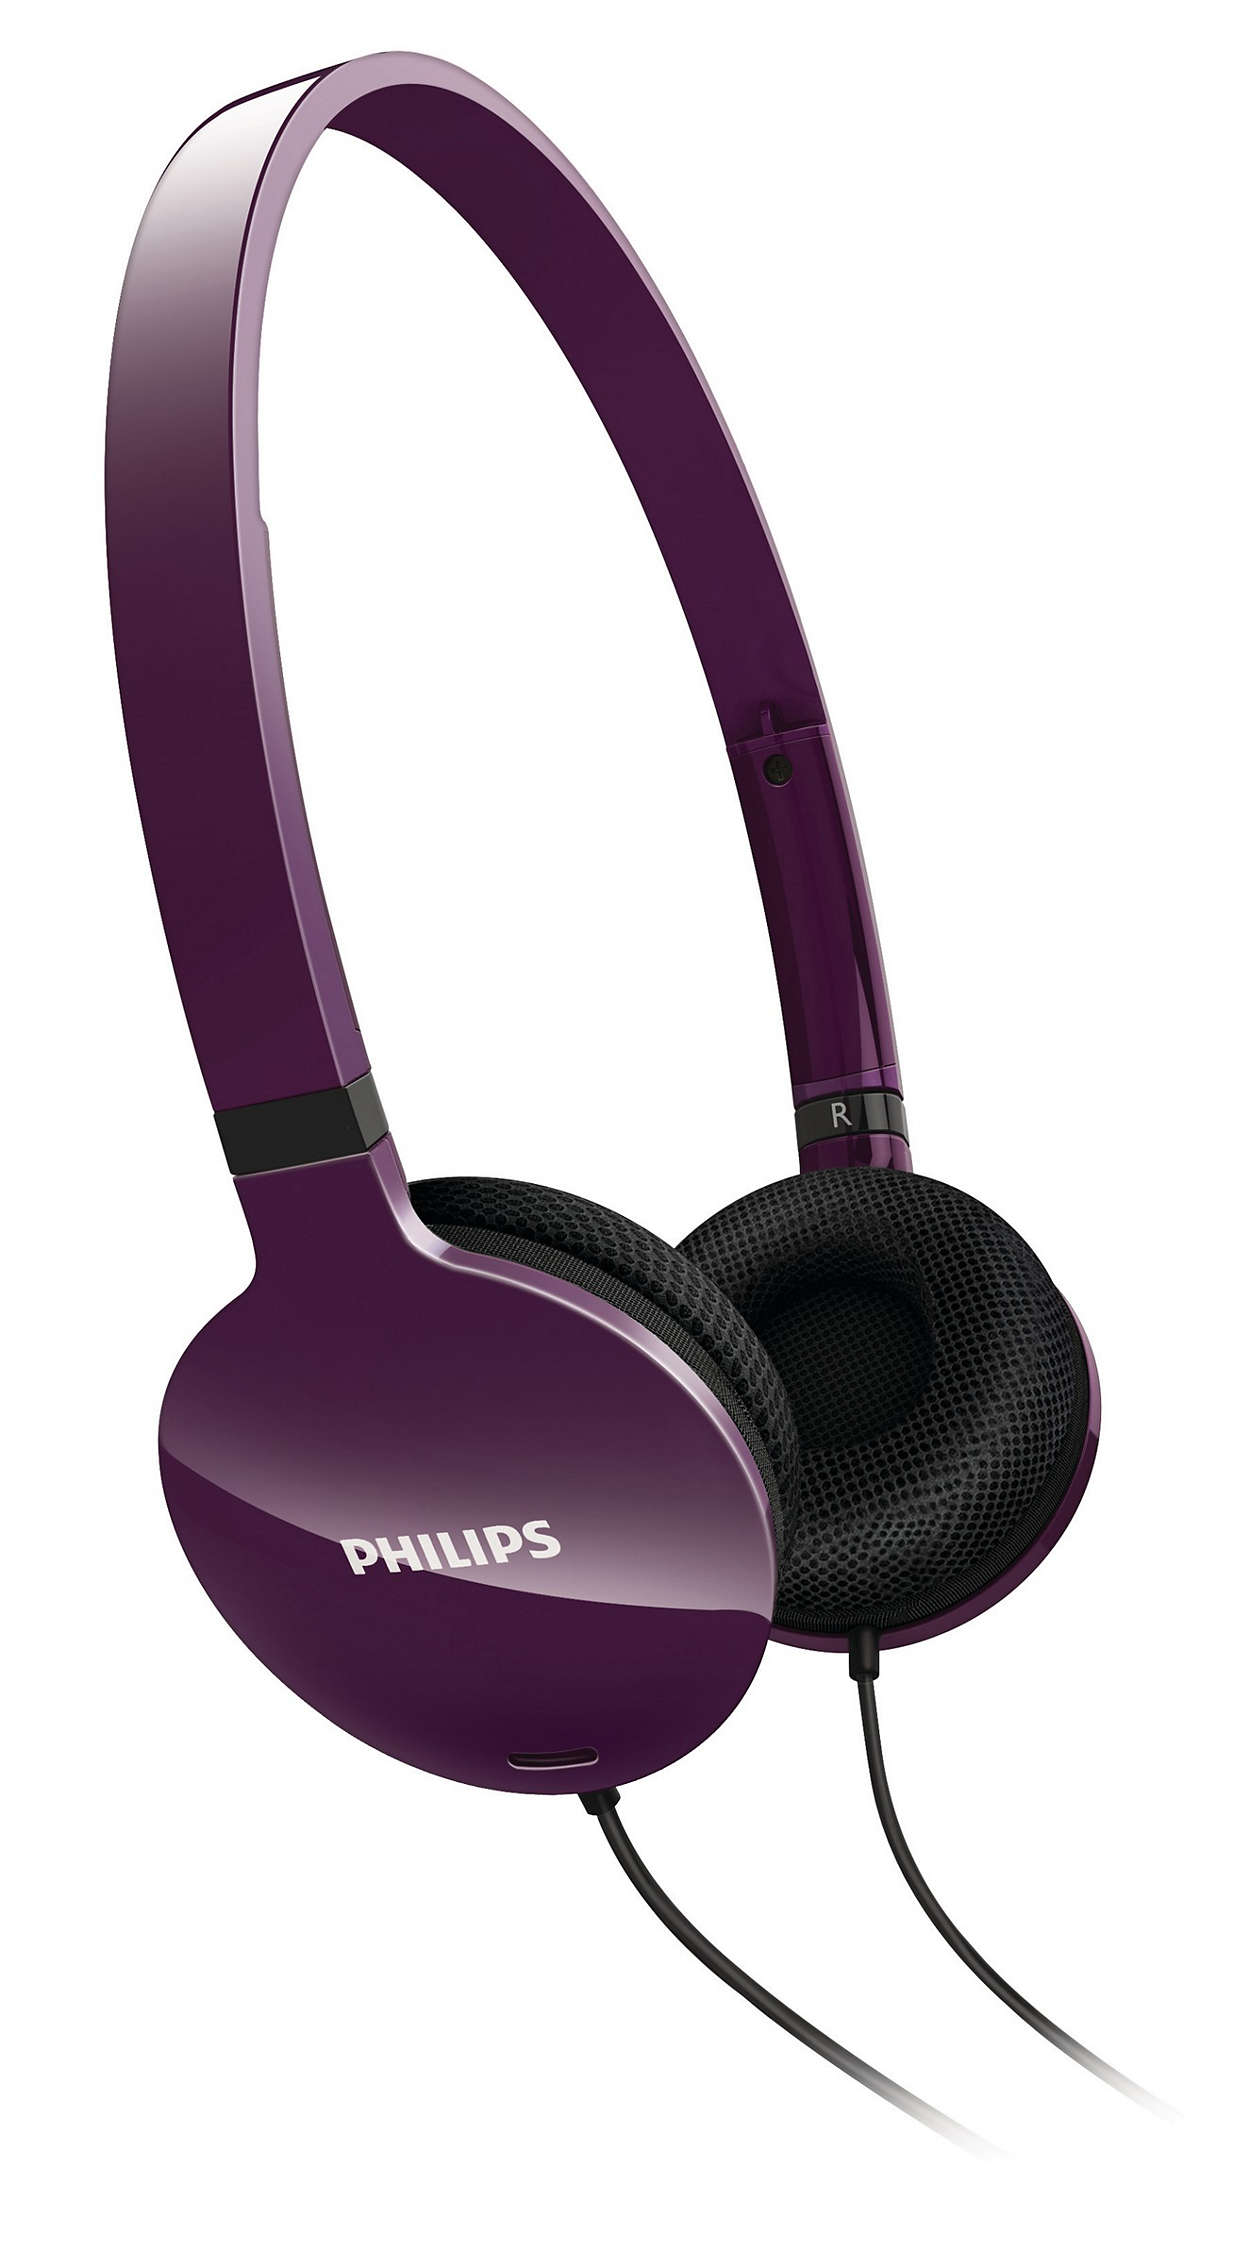 Lightweight comfort, powerful sound